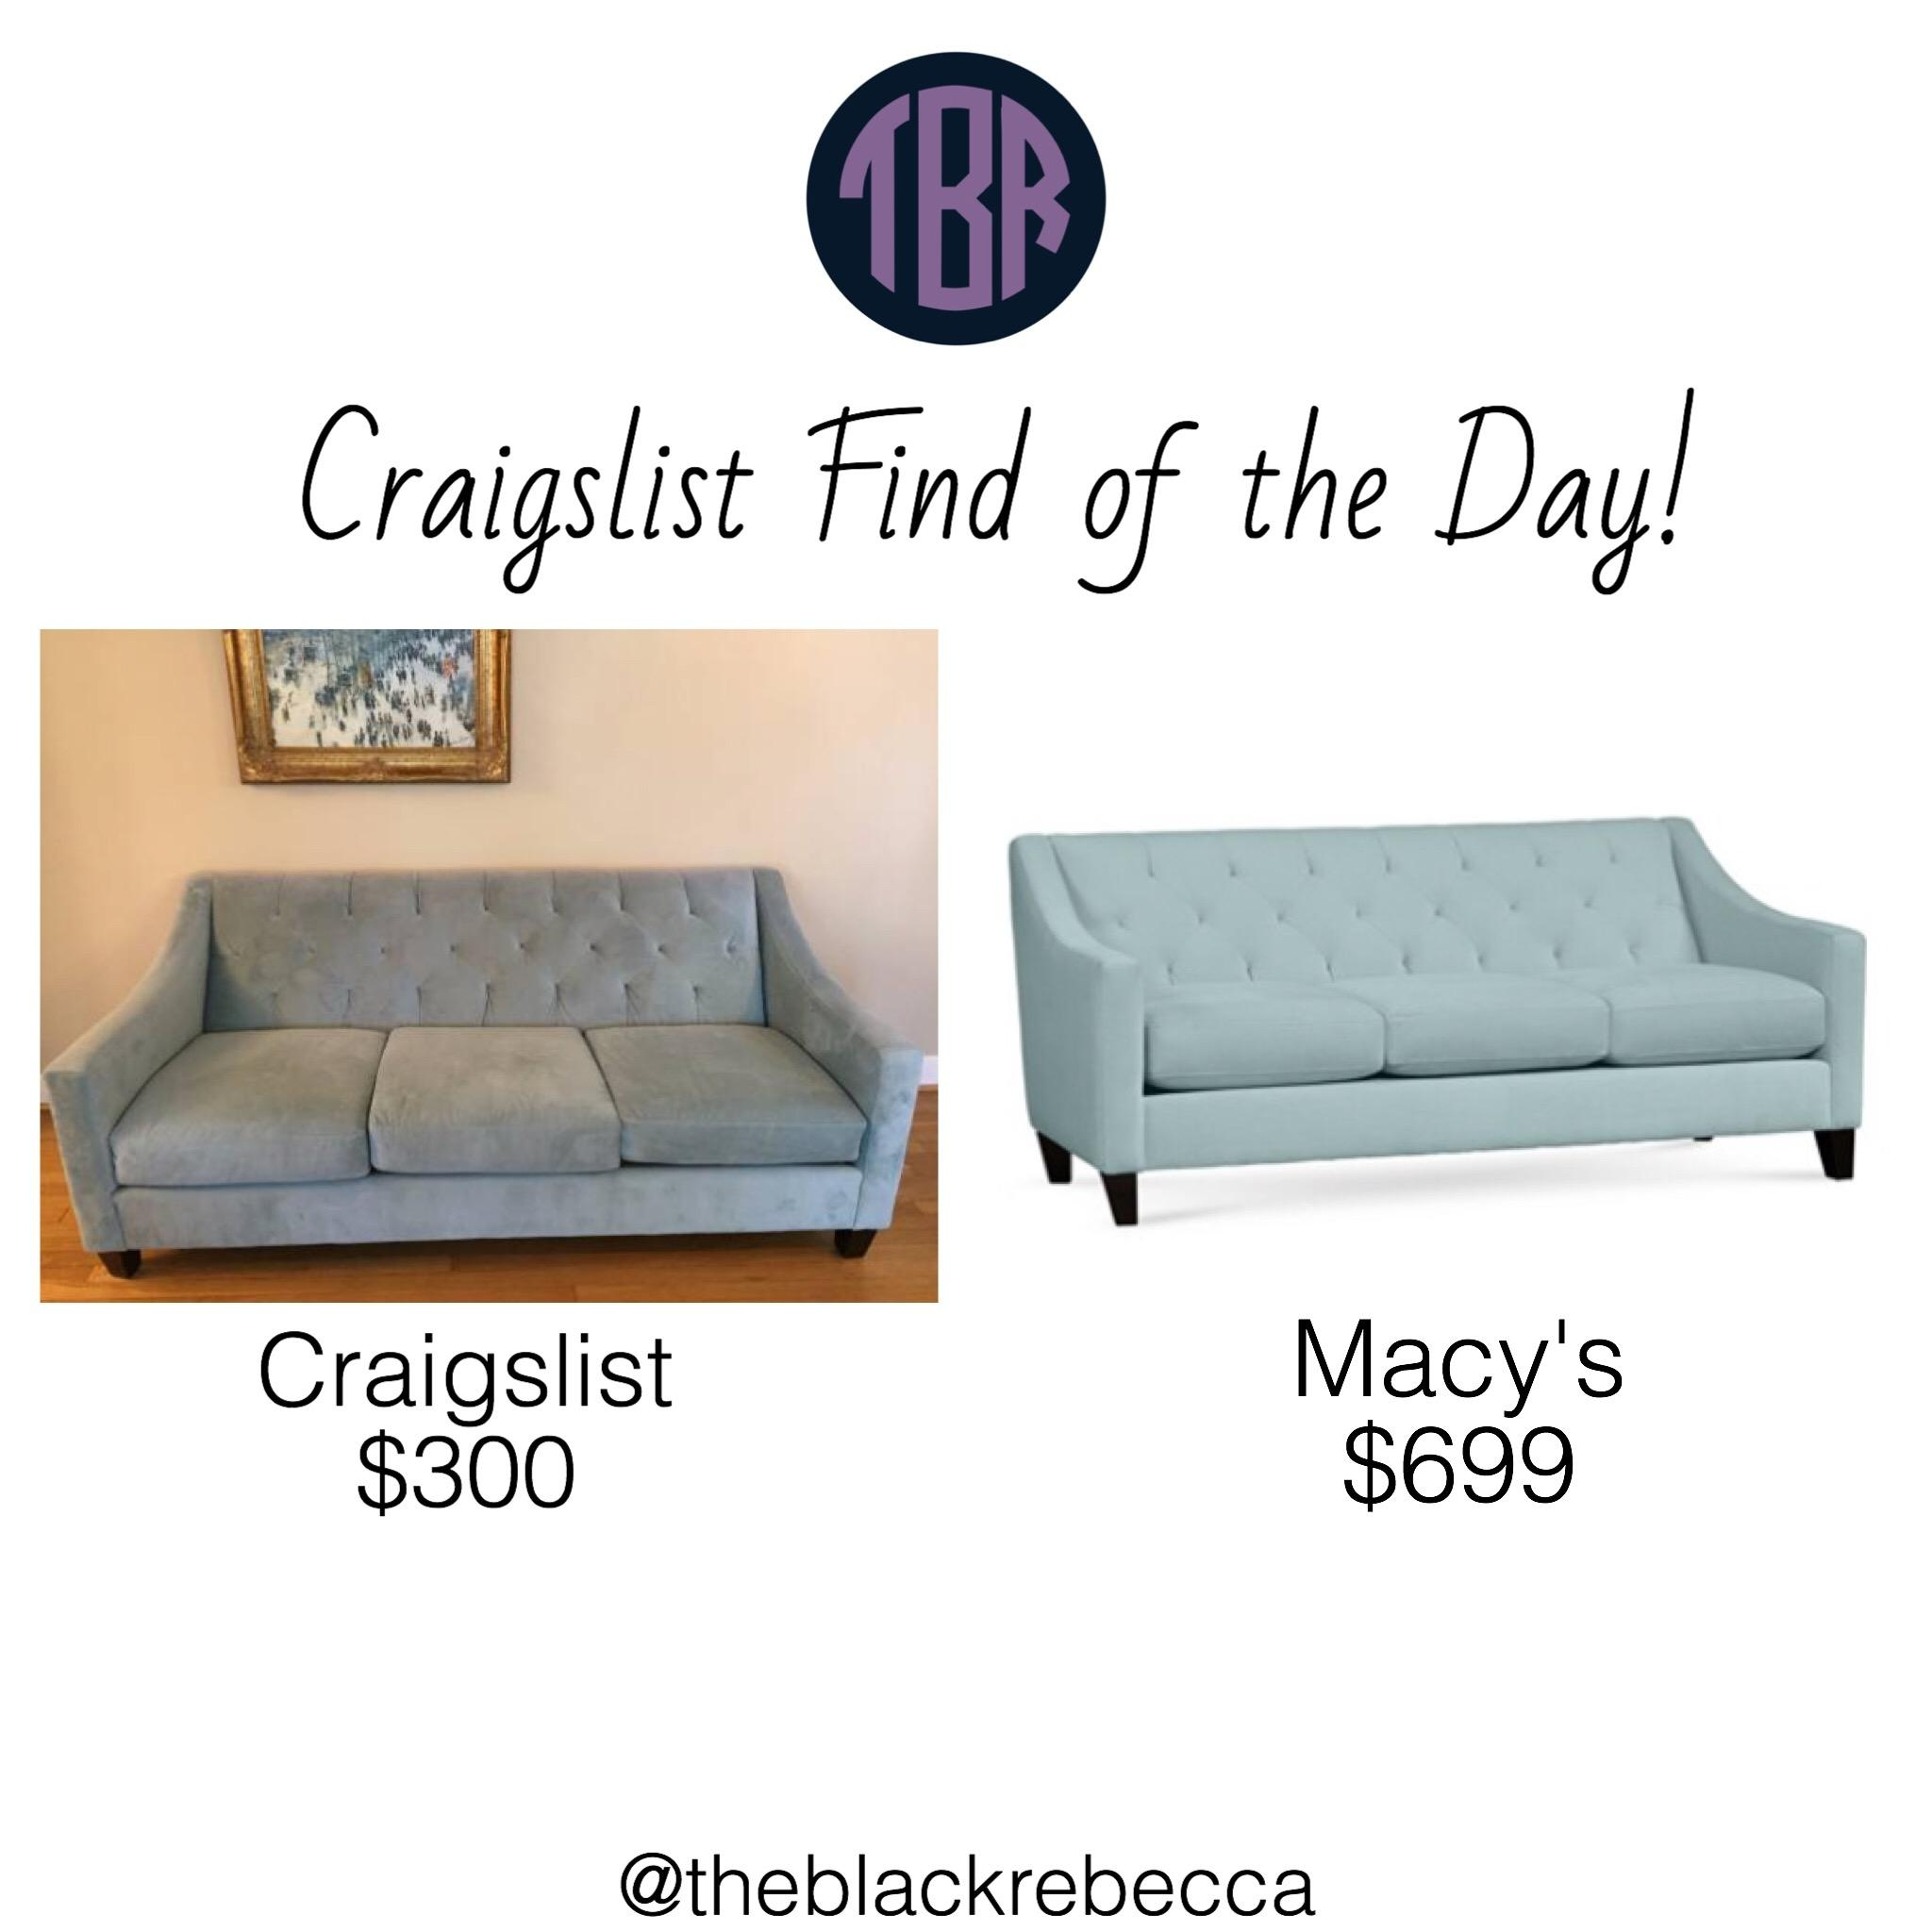 Craigslist Find Of The Day: Macy's Chloe Velvet Tufted Sofa – The Pertaining To Seafoam Sofas (Image 5 of 20)